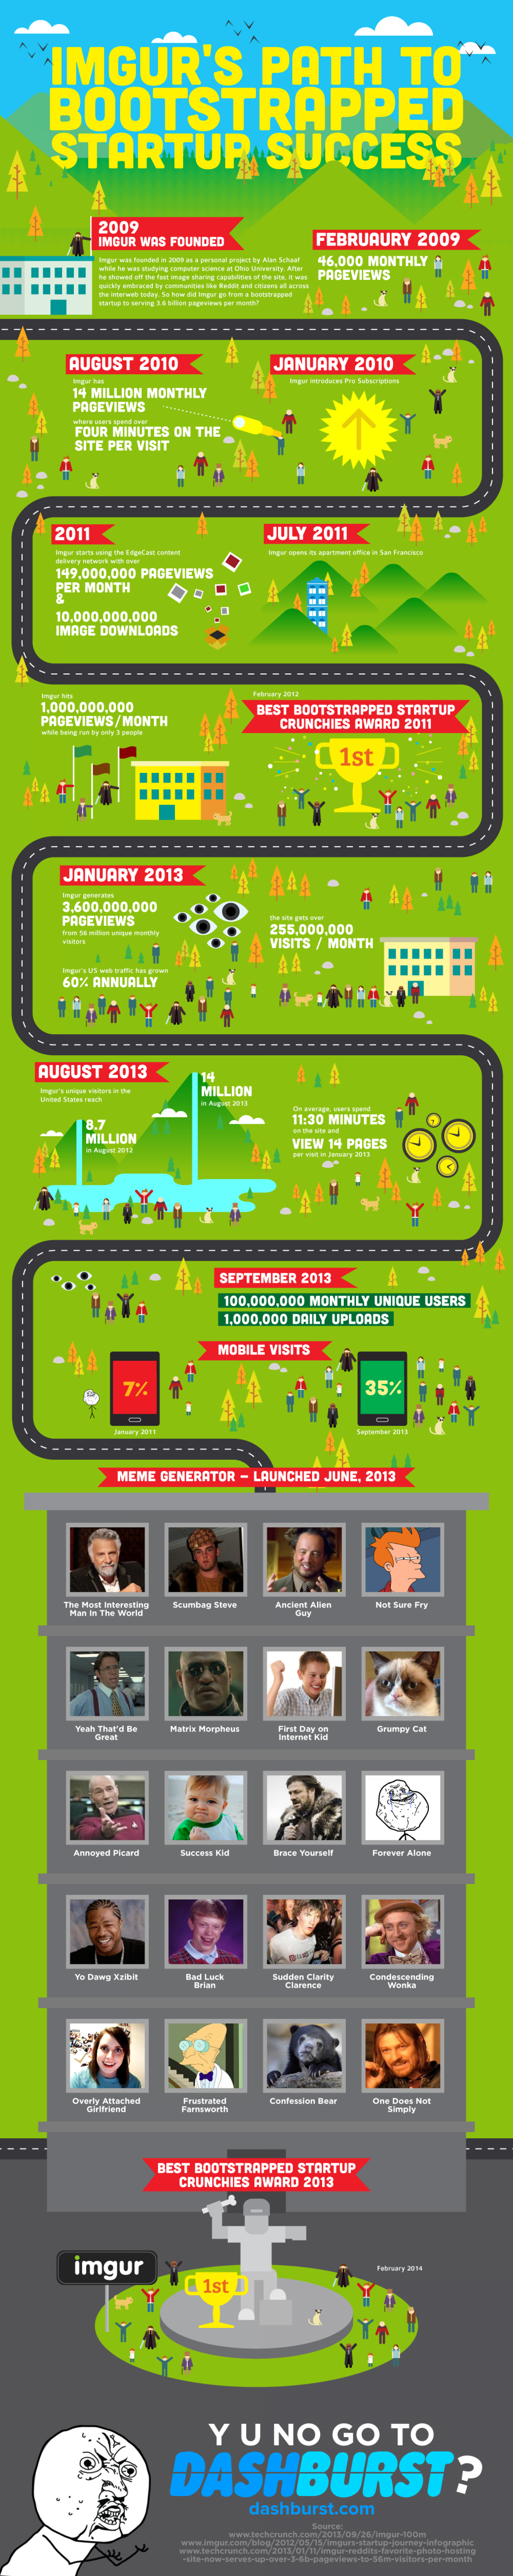 The History of Imgur Infographic